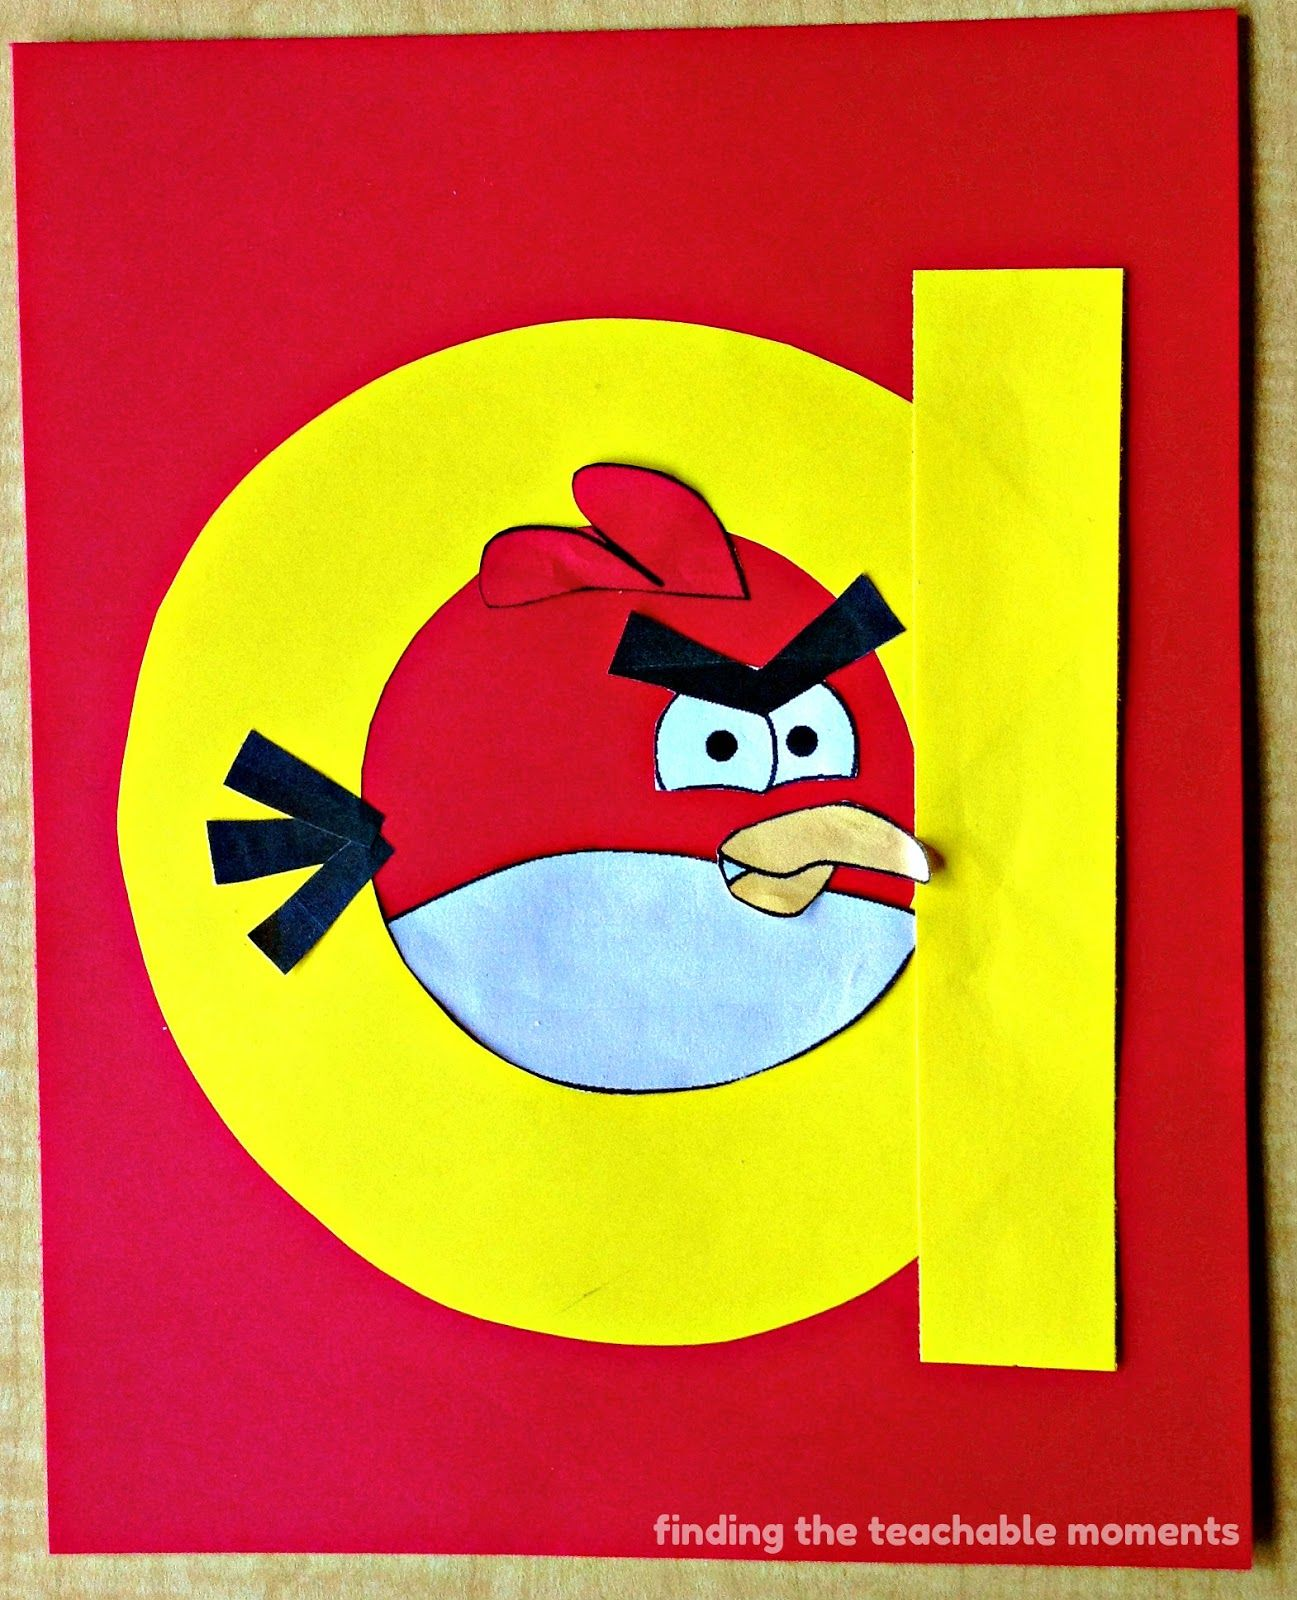 A Is For Angry Bird An Angry Bird Inside A Lowercase